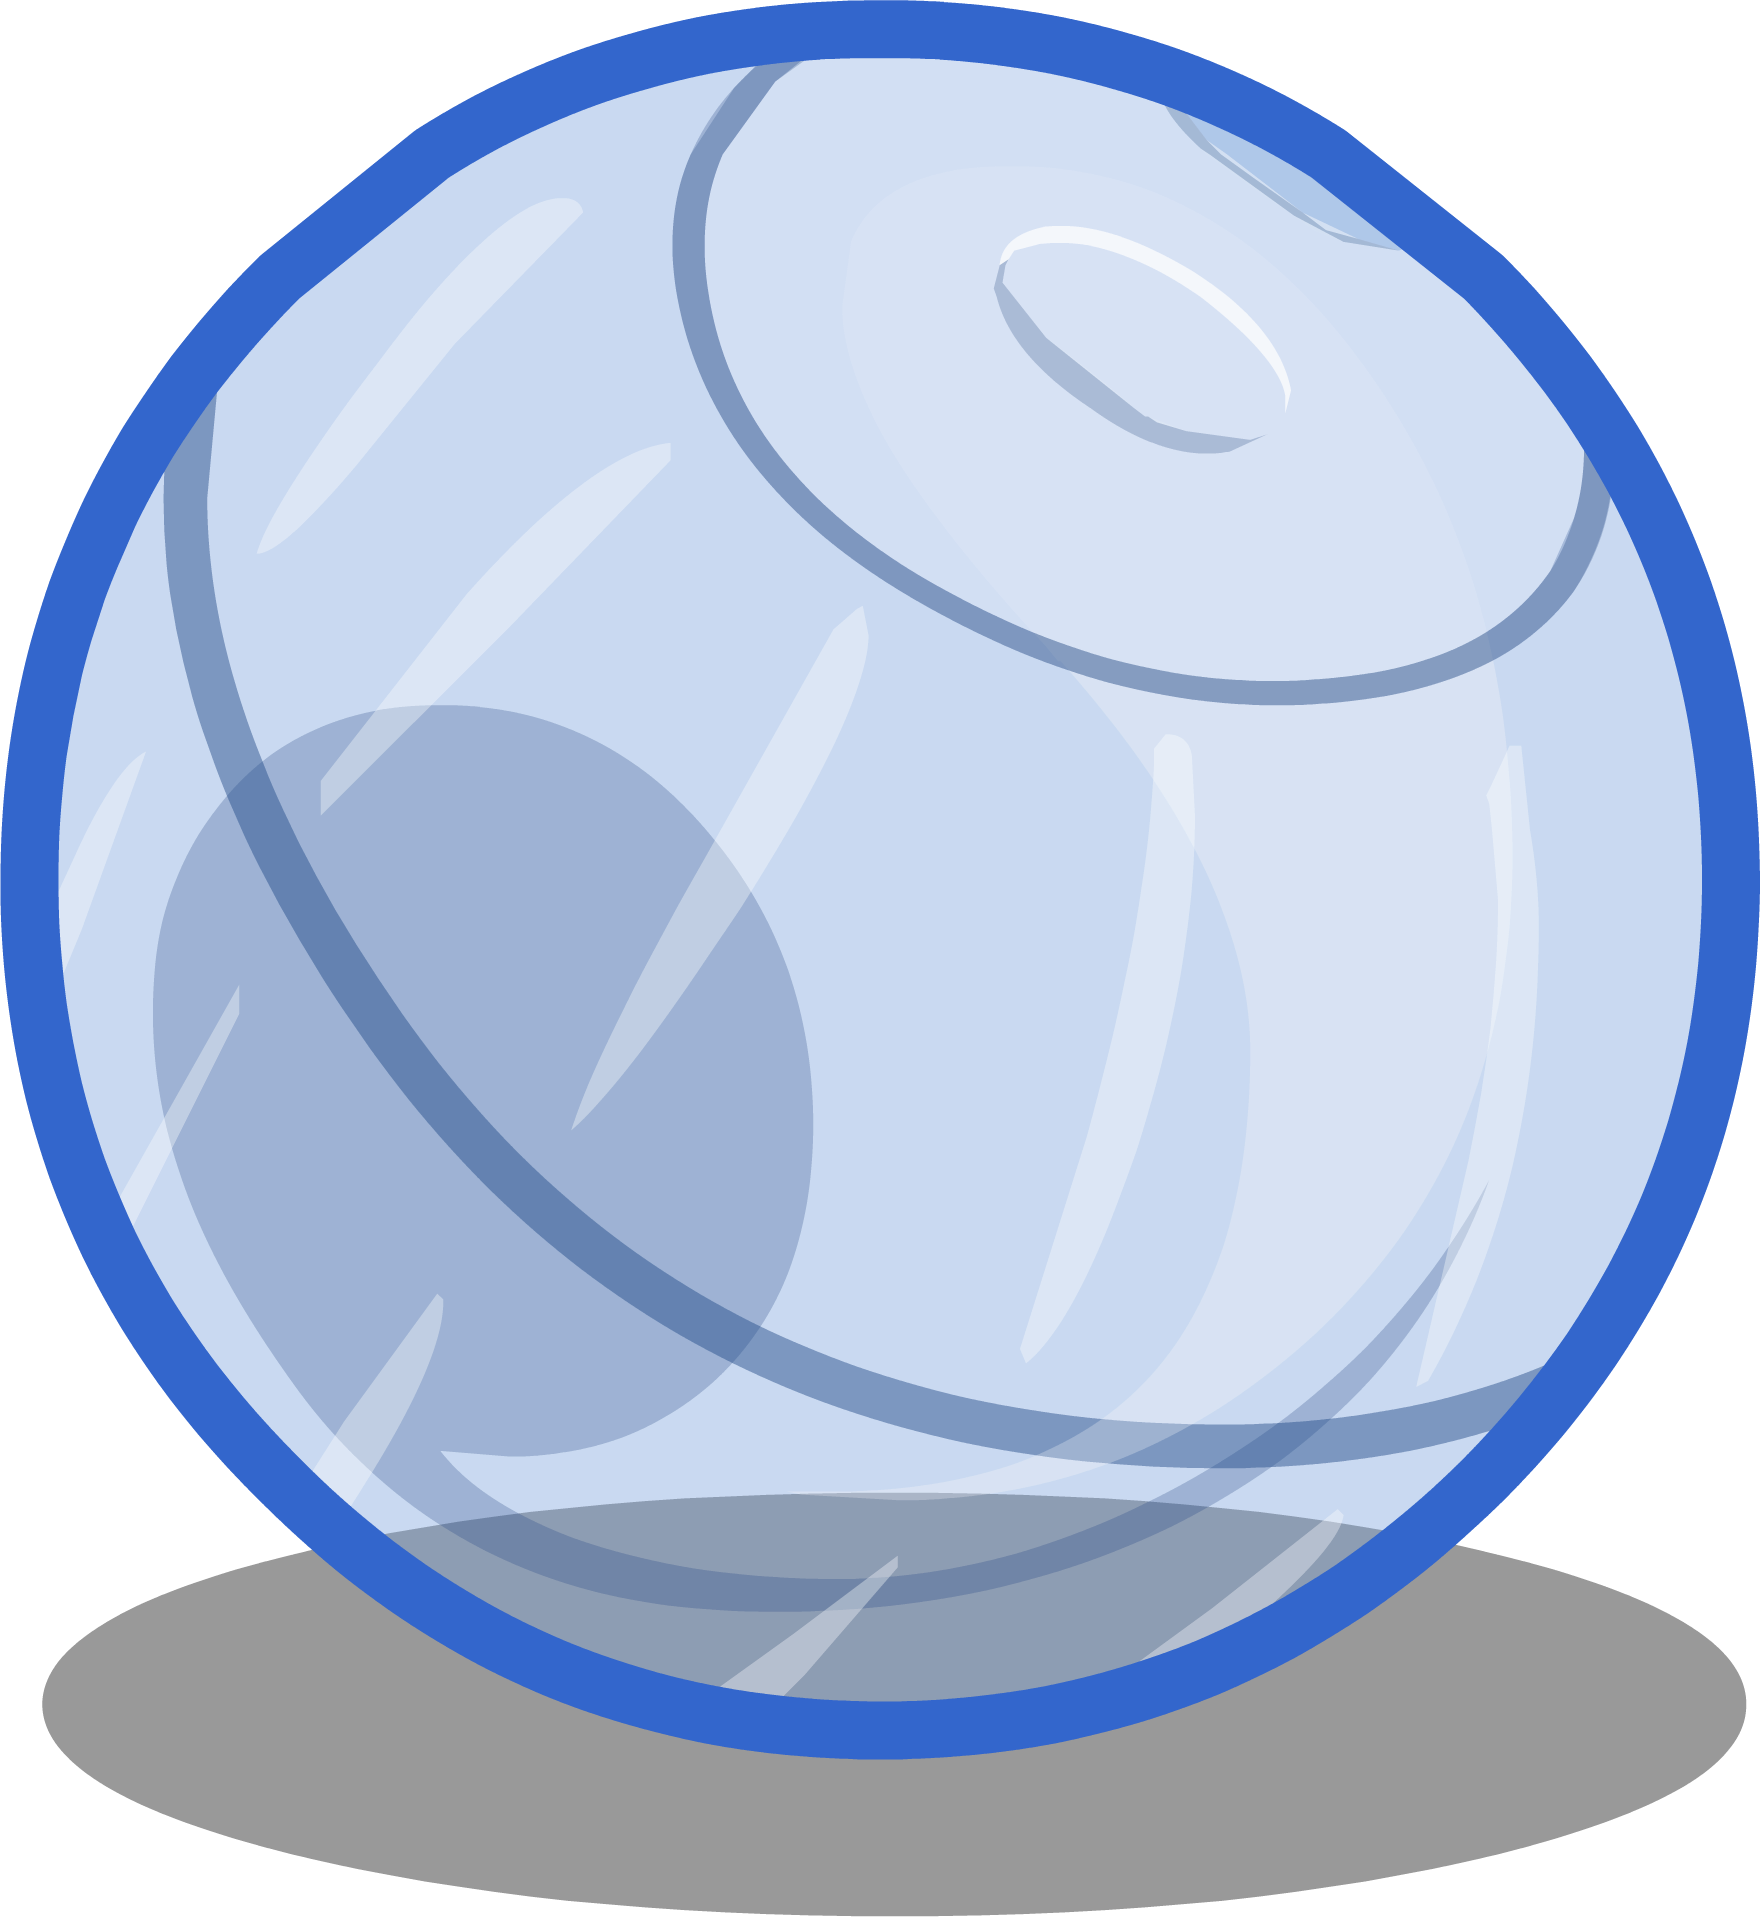 Image puffle club penguin. Ball sprite png clip transparent stock